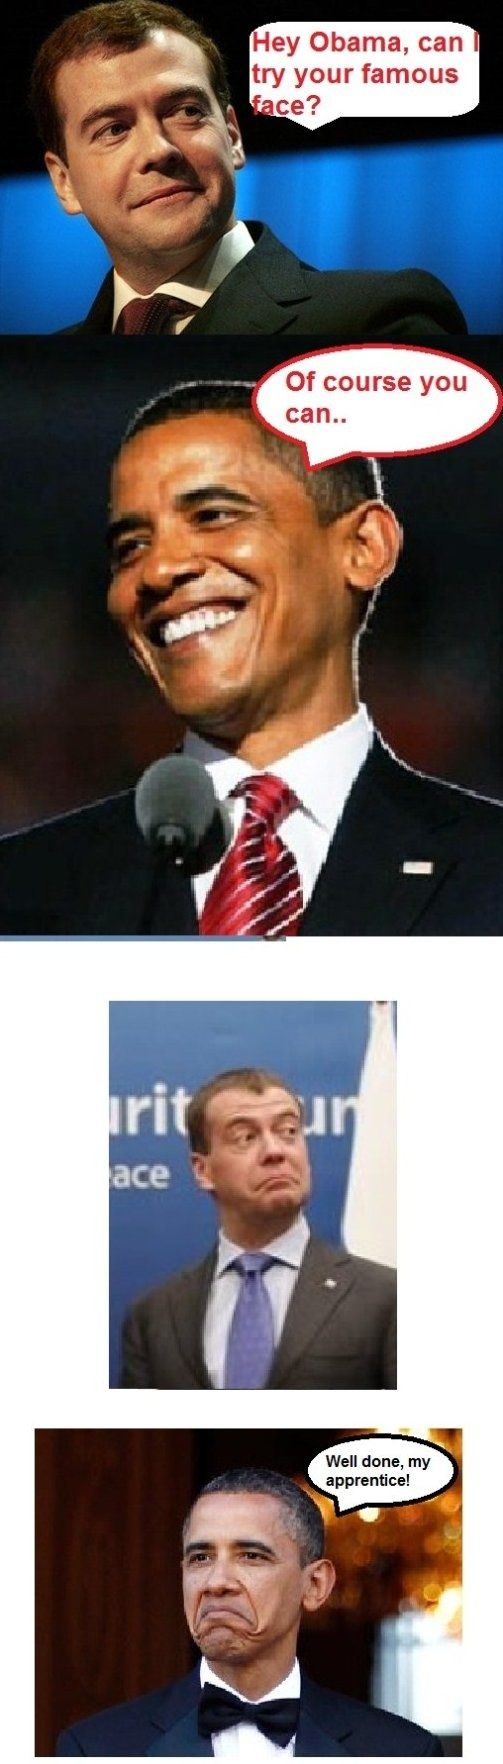 Obama - Not Bad - More Fun Here: http://funny-pictures-blog.com/?p=32532